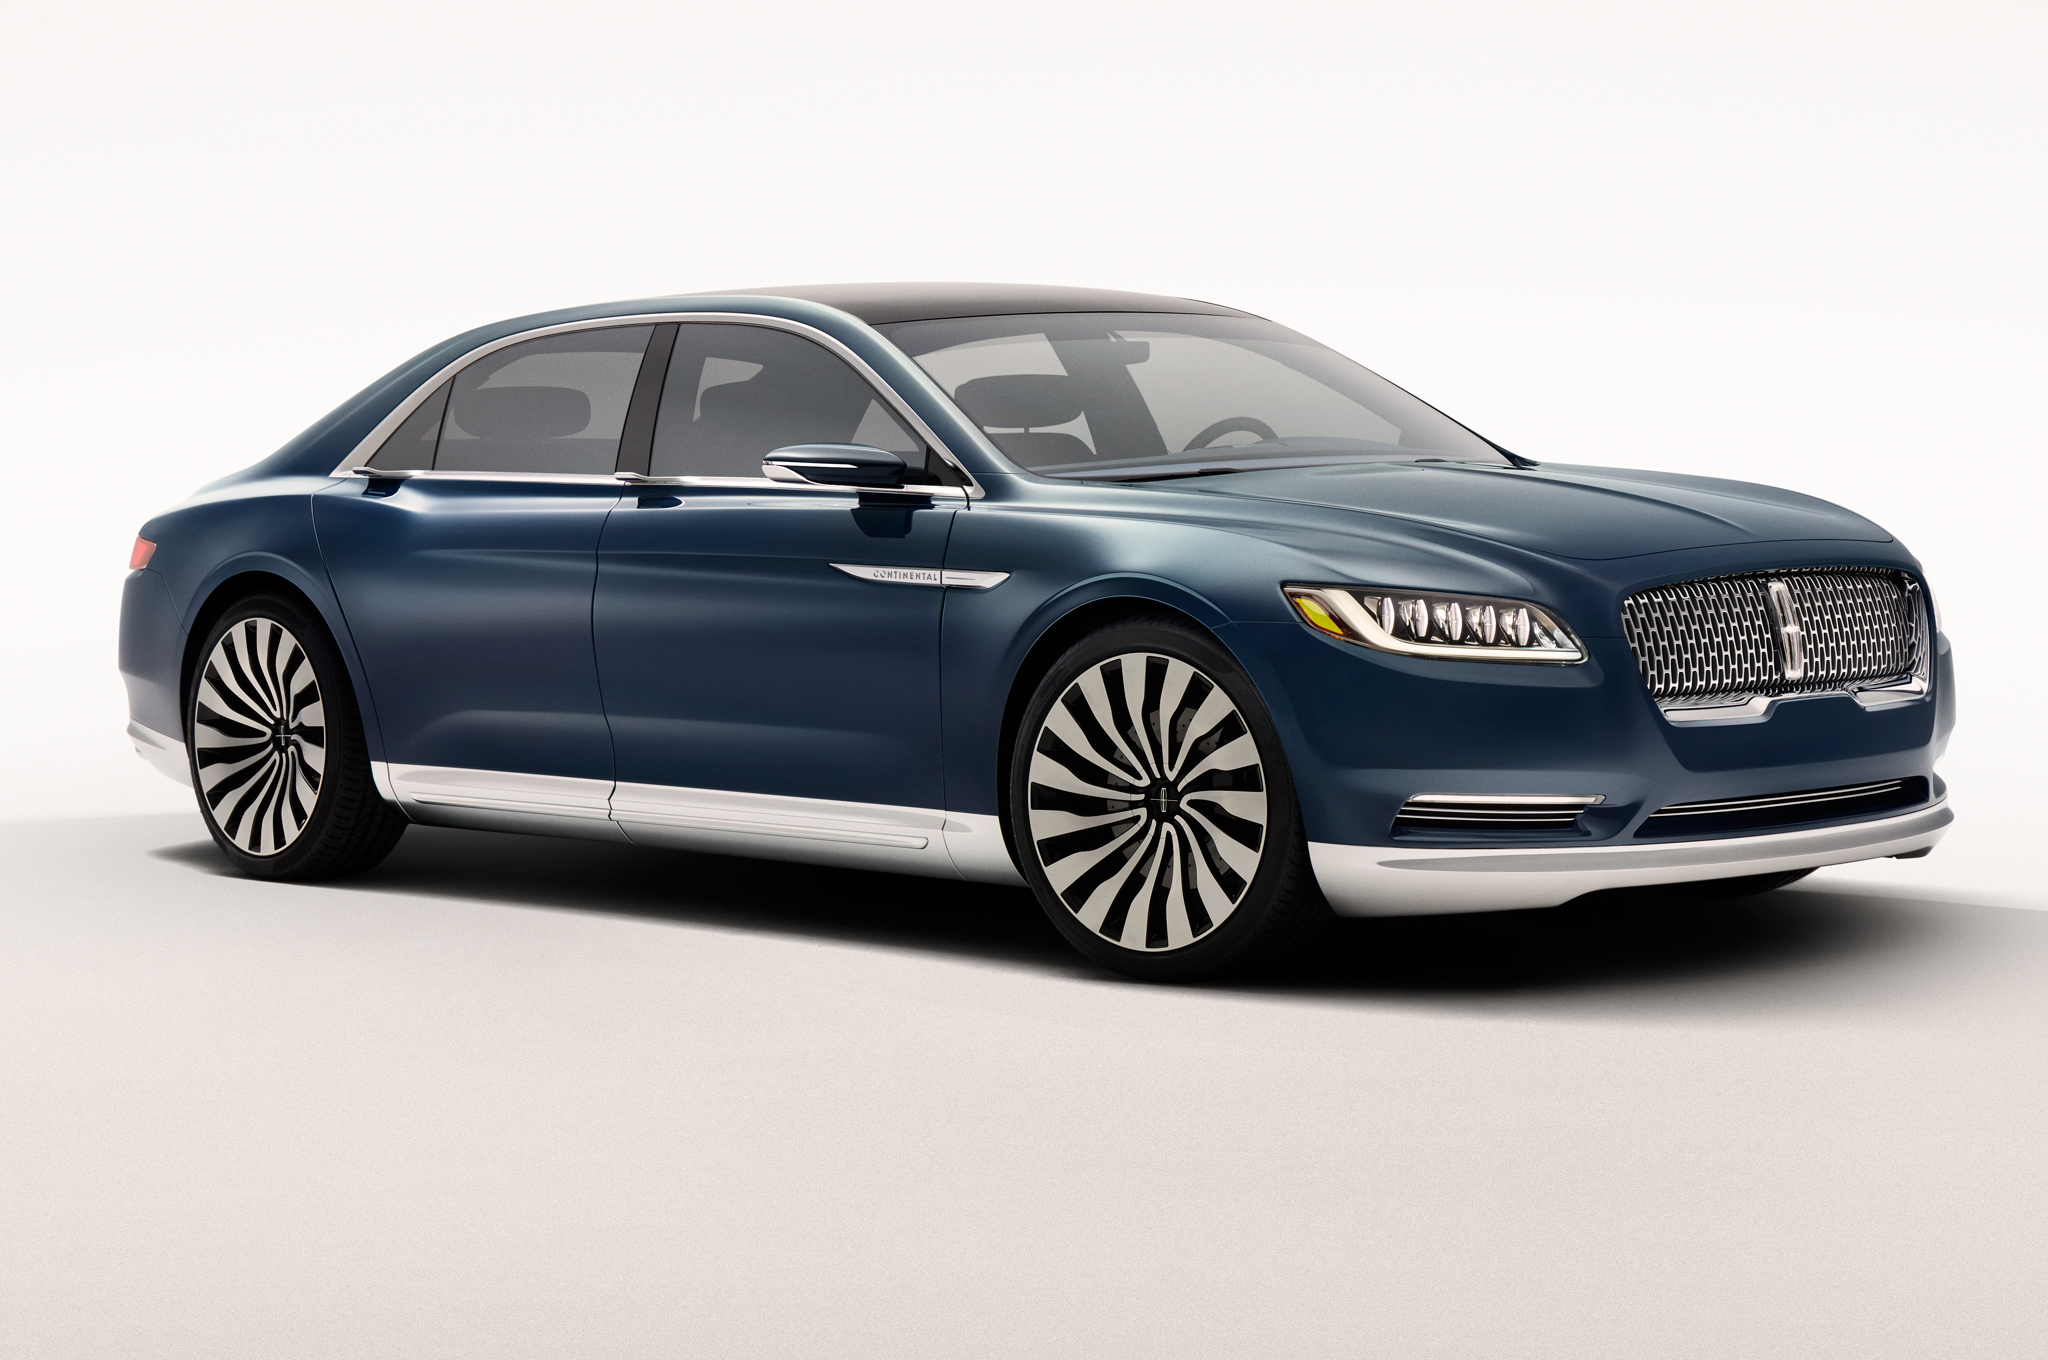 Lincoln Recently Showed Their Continental Concept Car To The World